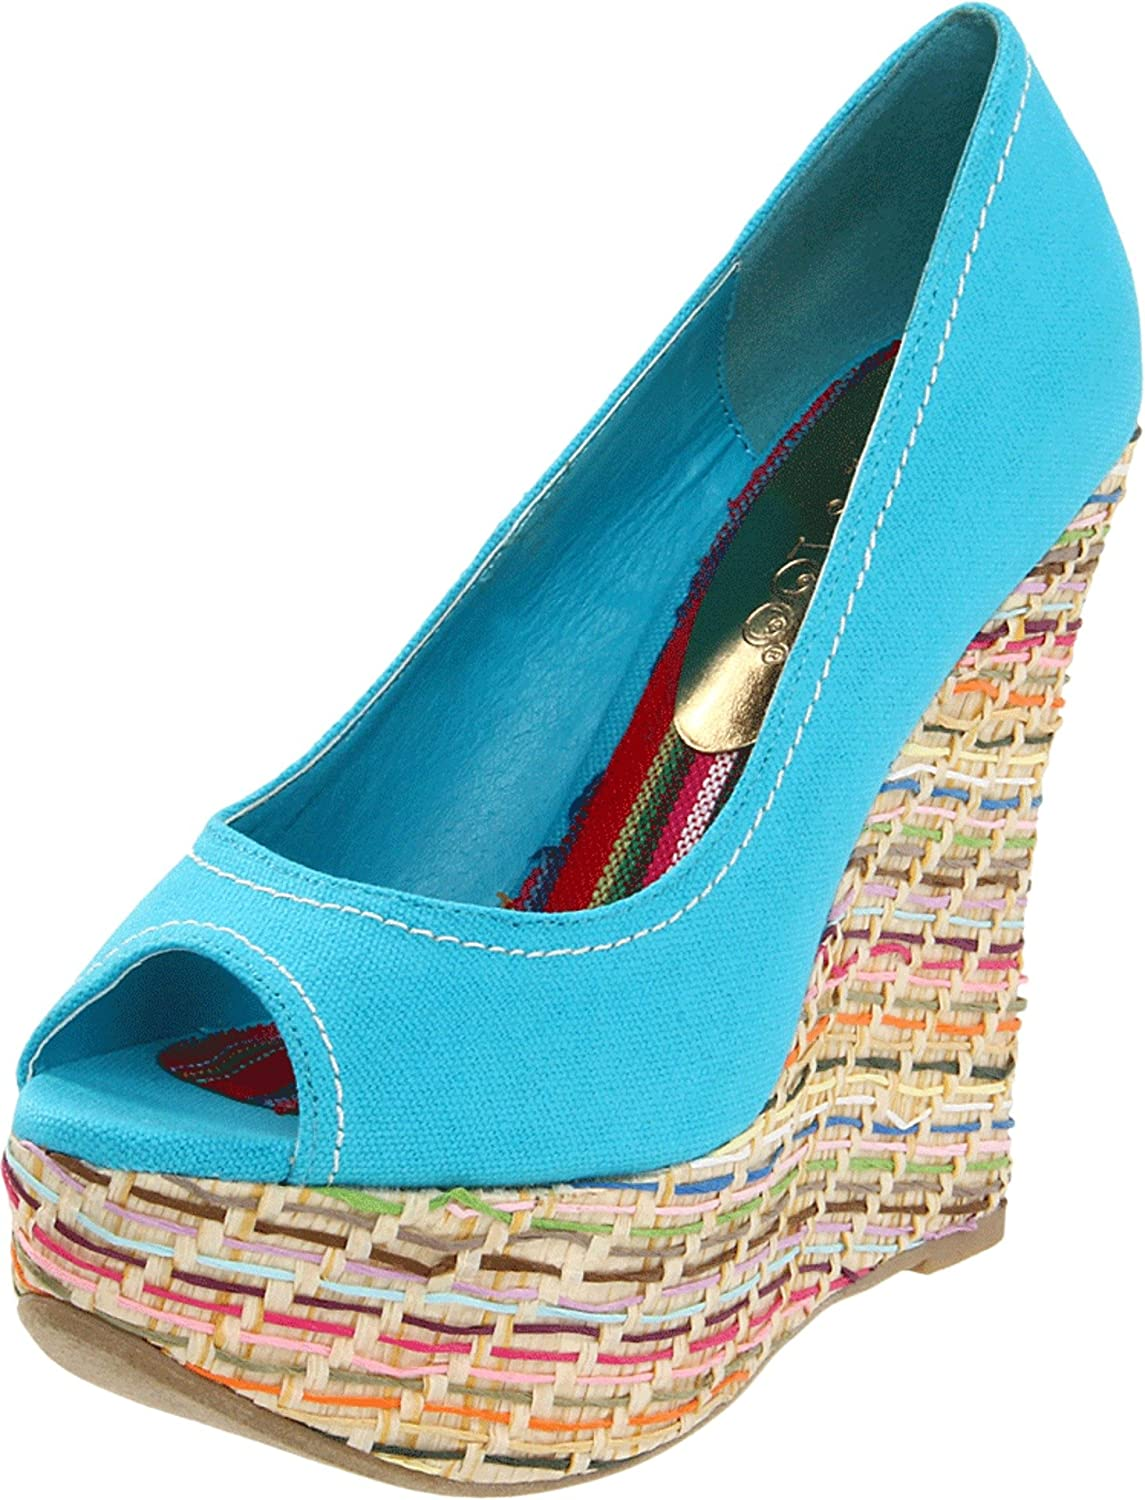 2 Lips Now Dealing full price reduction free shipping Too Women's Desire Wedge Pump